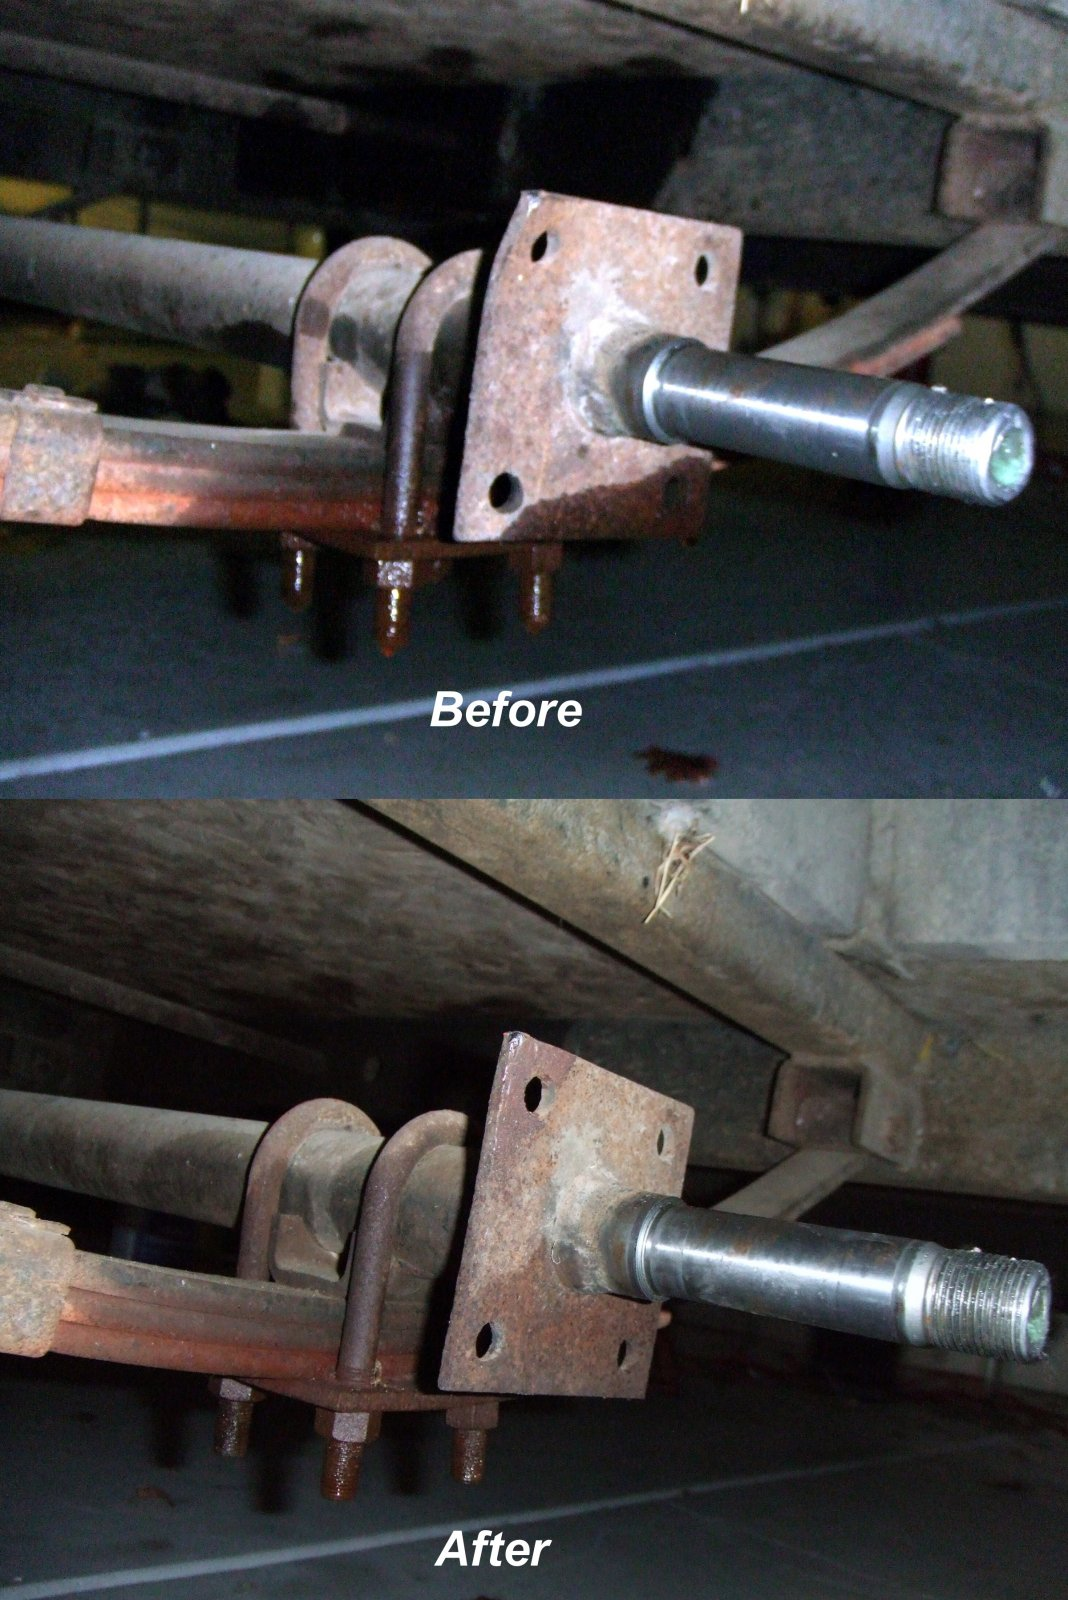 Click image for larger version  Name:Before and After.jpg Views:70 Size:281.4 KB ID:30735